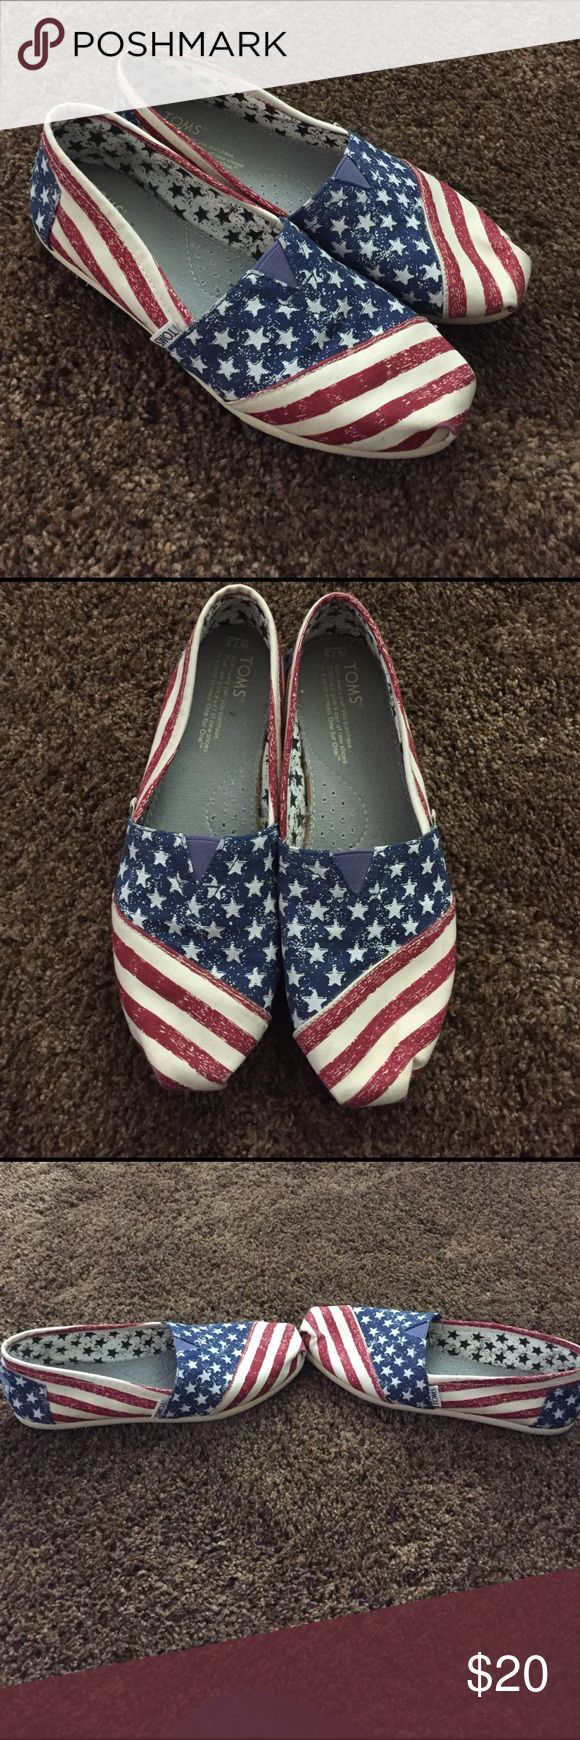 RARE Flag Toms Women's size 7.5 Toms. Flag canvas design! Worn only once for a few hours! Next to perfect condition! No holes or stains! The white part isn't really white it's like an off white/ivoryish color! Very clean! TOMS Shoes Flats & Loafers